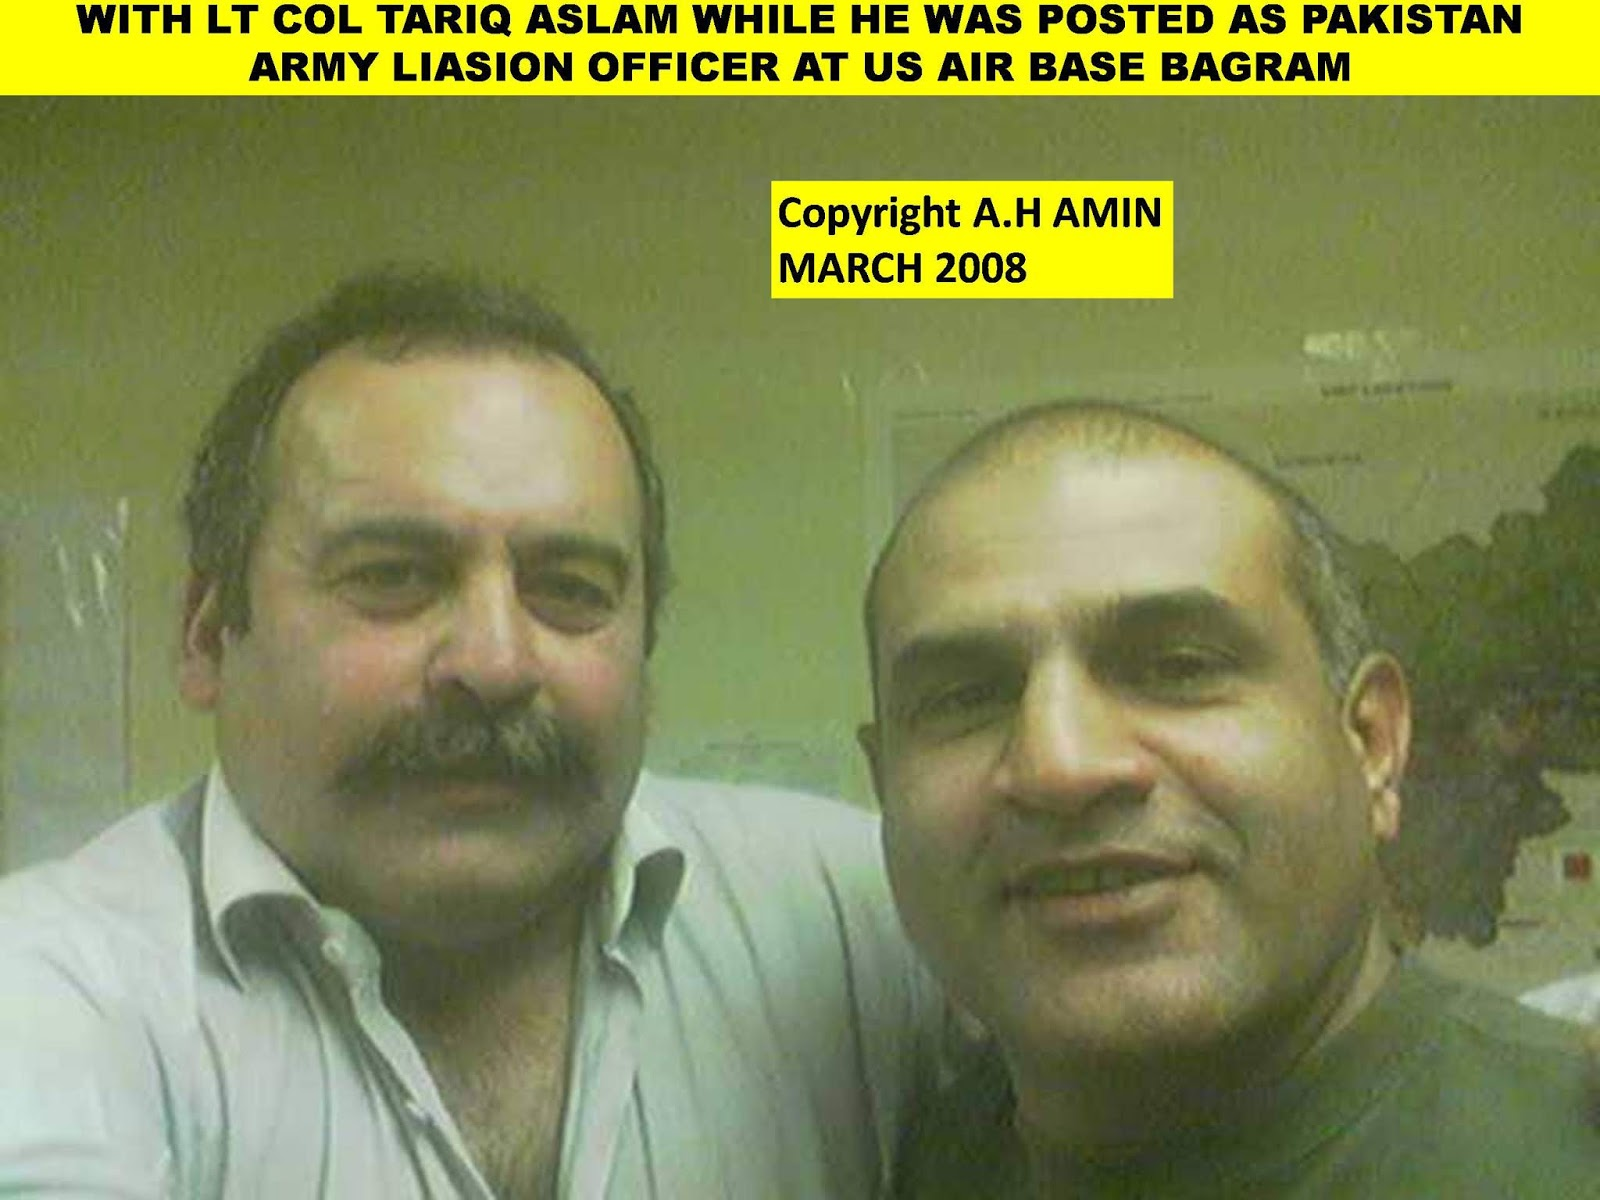 lieutenant colonel tariq aslam was serving in pakistans military operations directorate and posted as liasion officer with us military forces at bagram